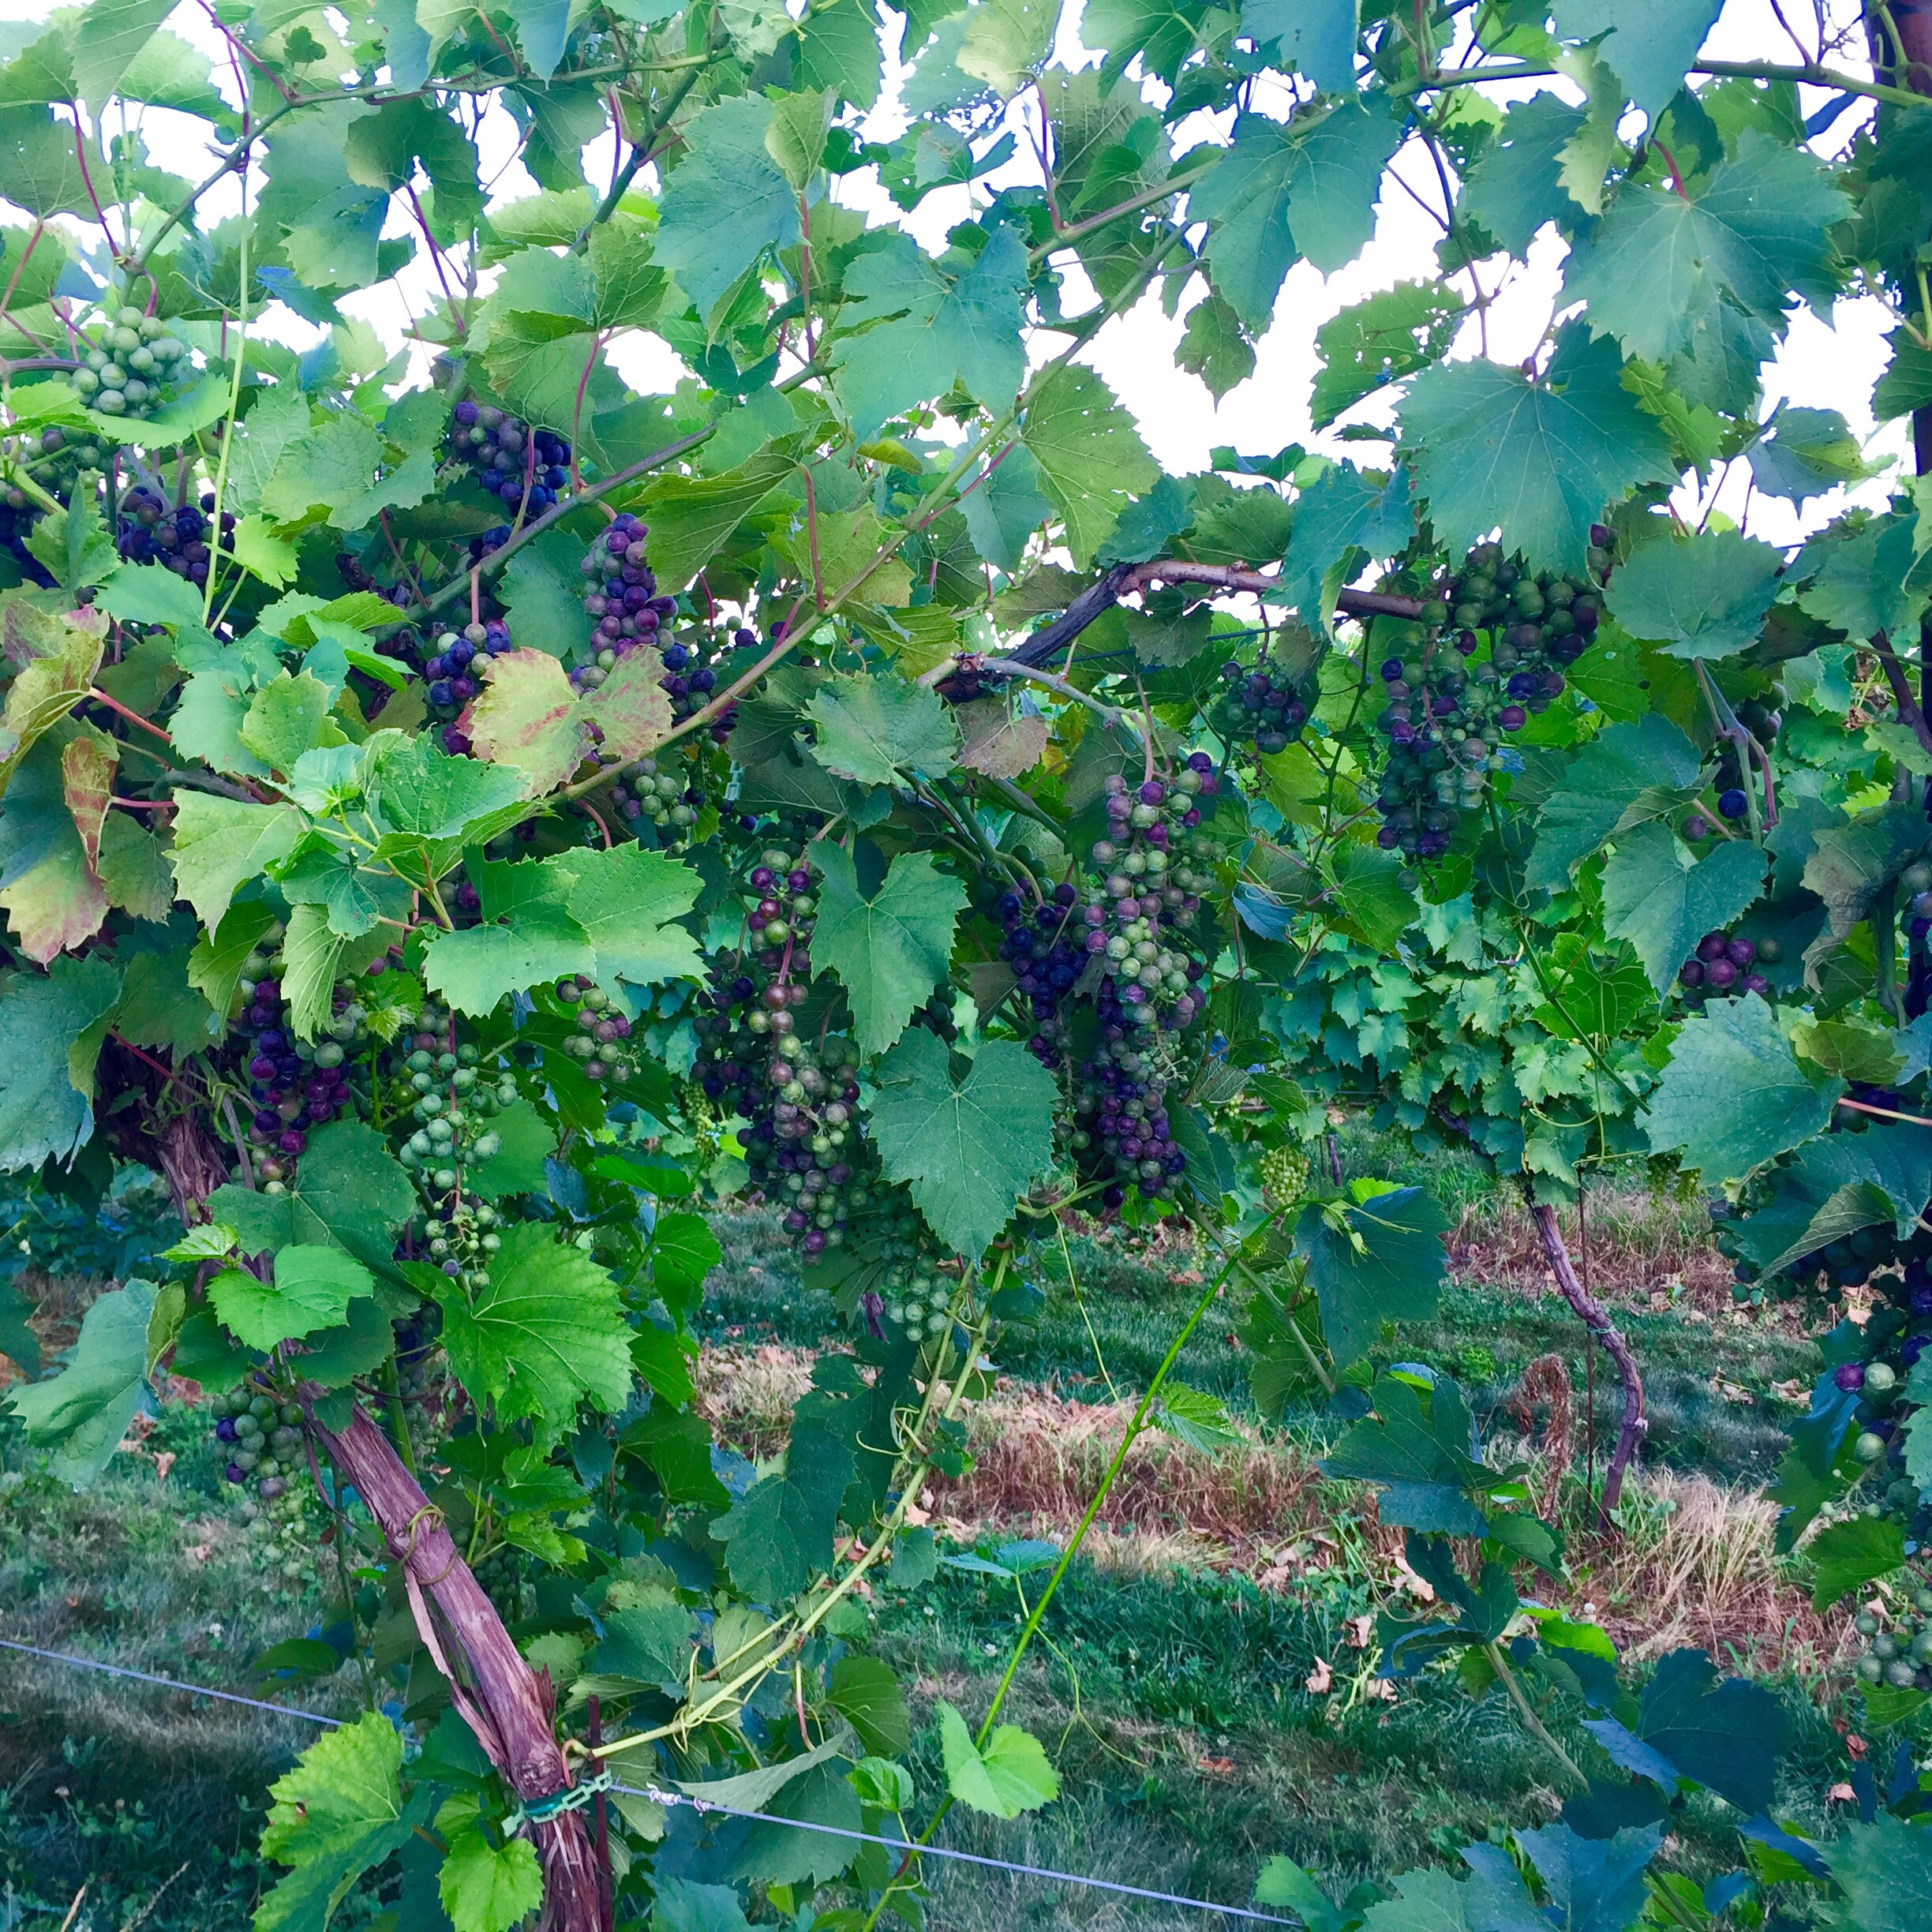 Chambourcin grapes changing from green to purple